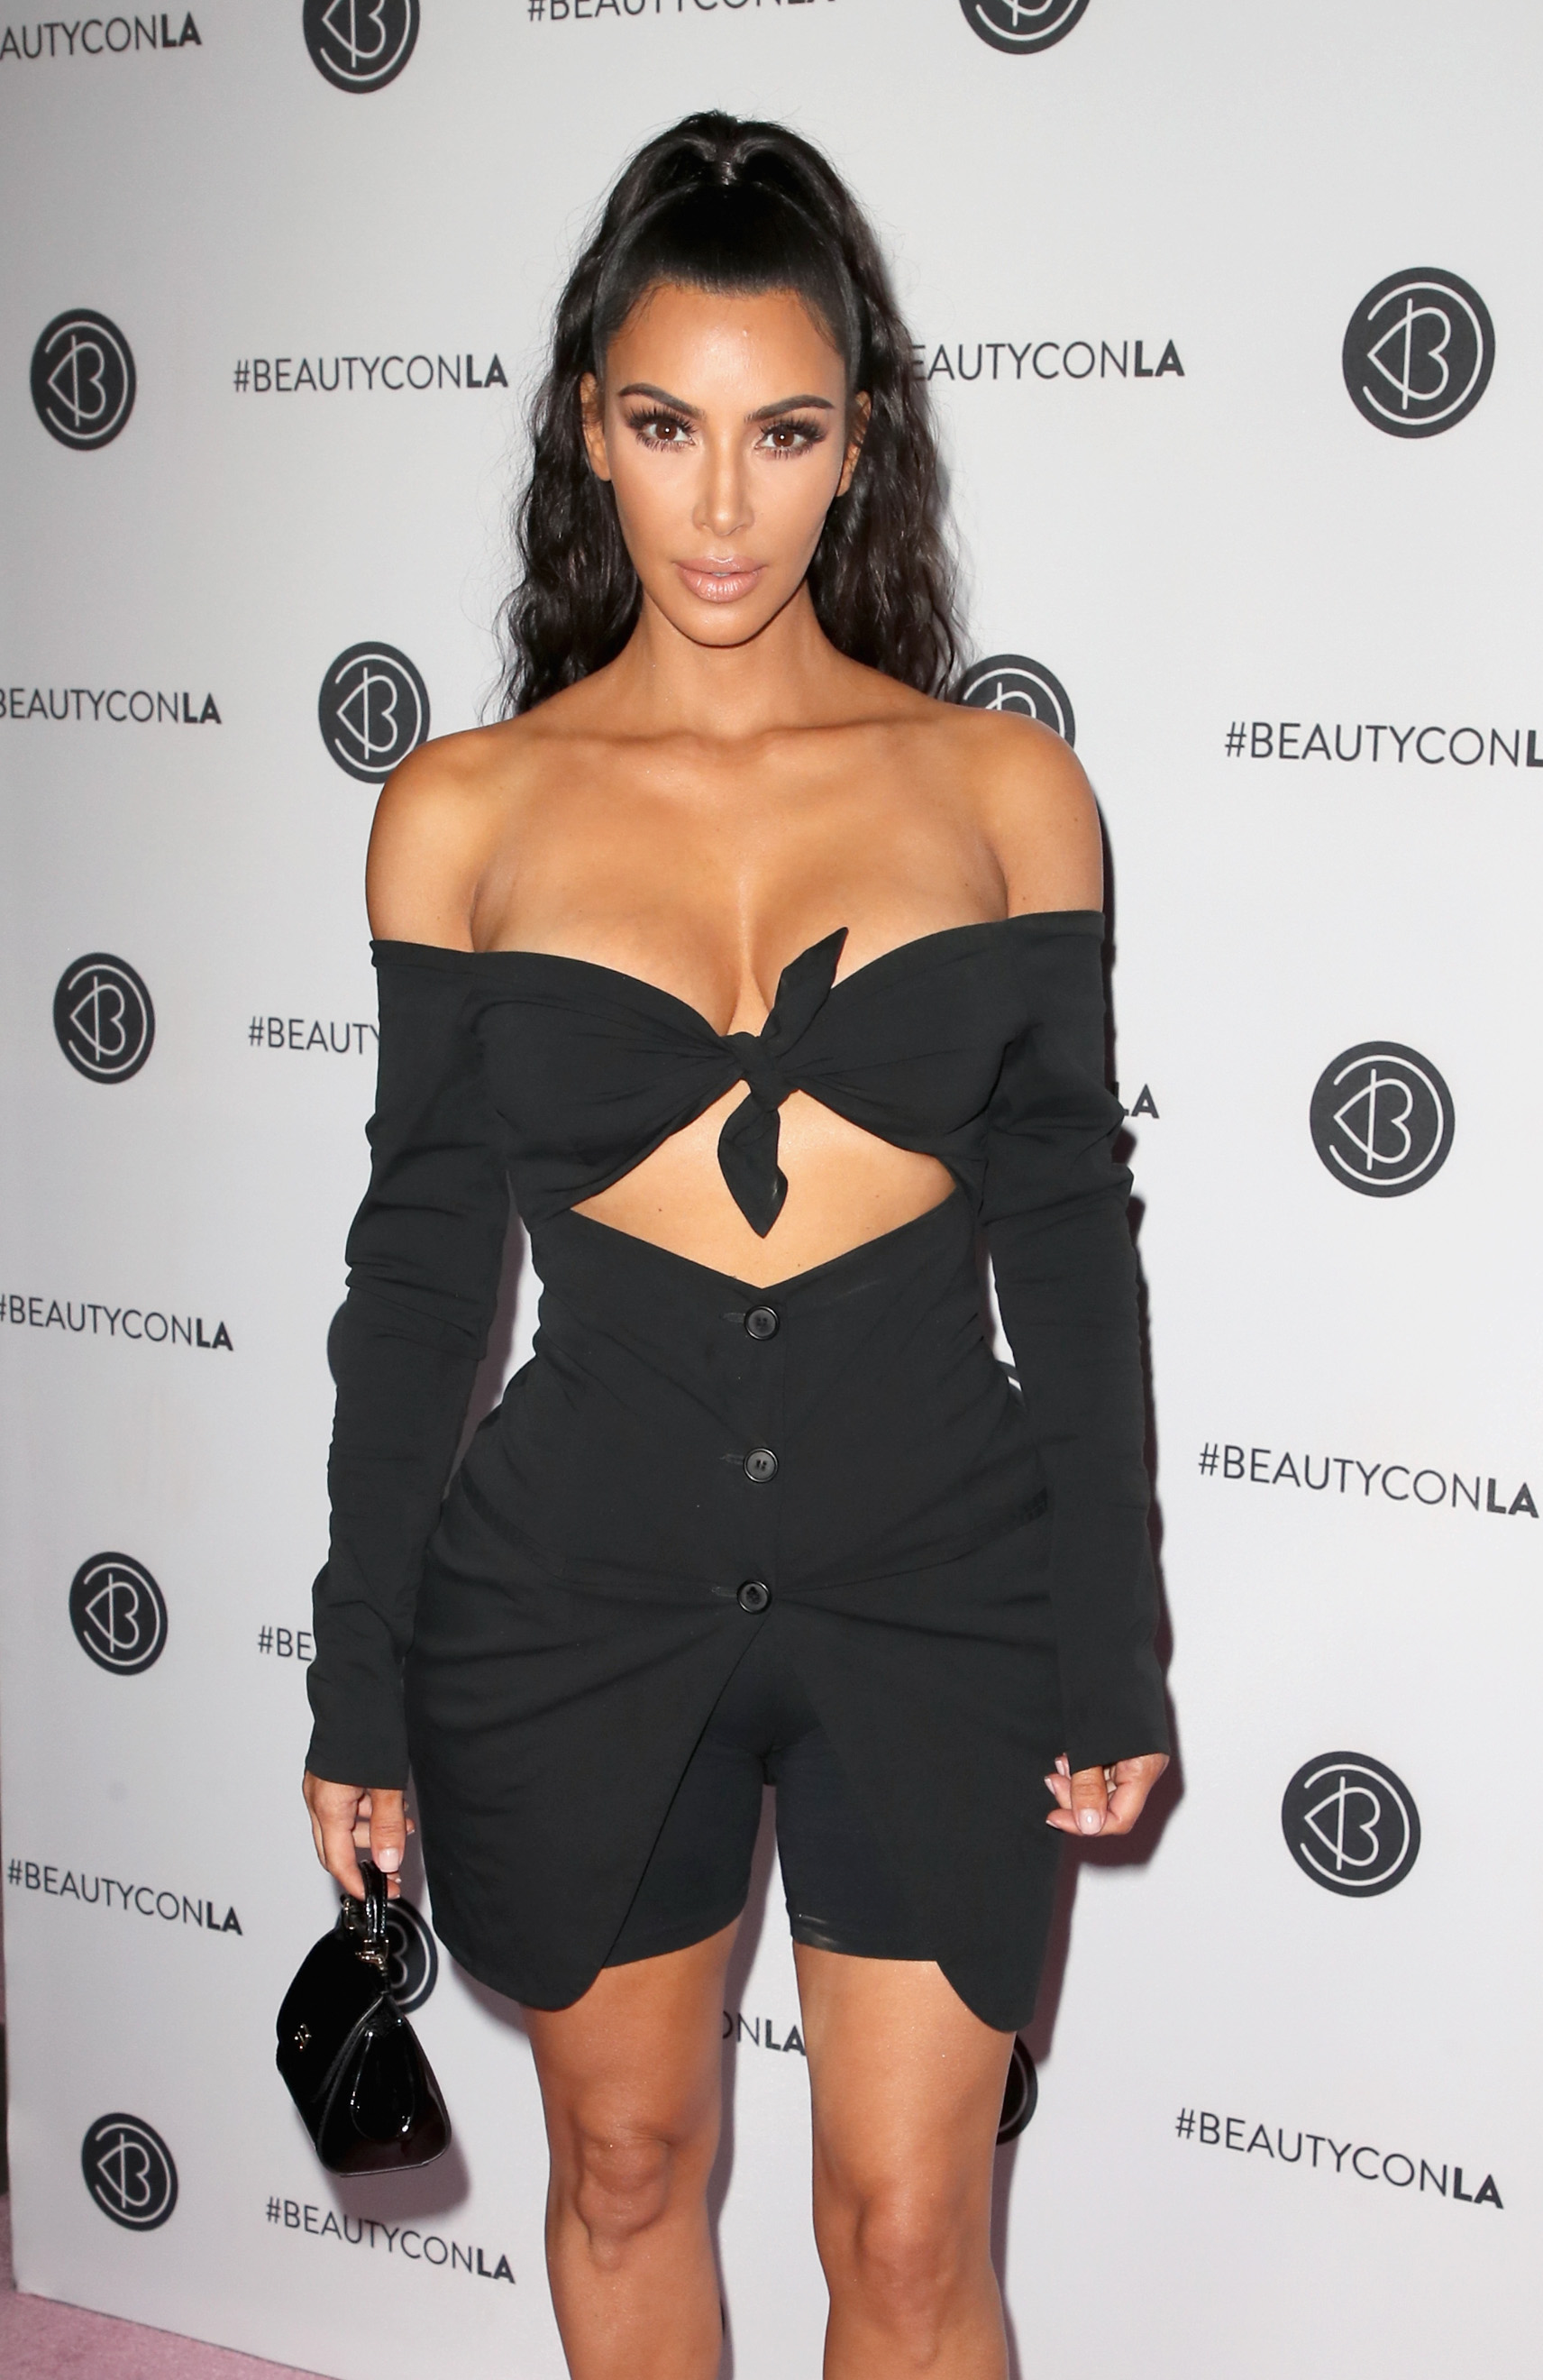 b4ac2b15f Kim Kardashian economizou no tecido de seu biquíni! Seria crise ! kkkkkk  (Photo by David Livingston Getty Images)